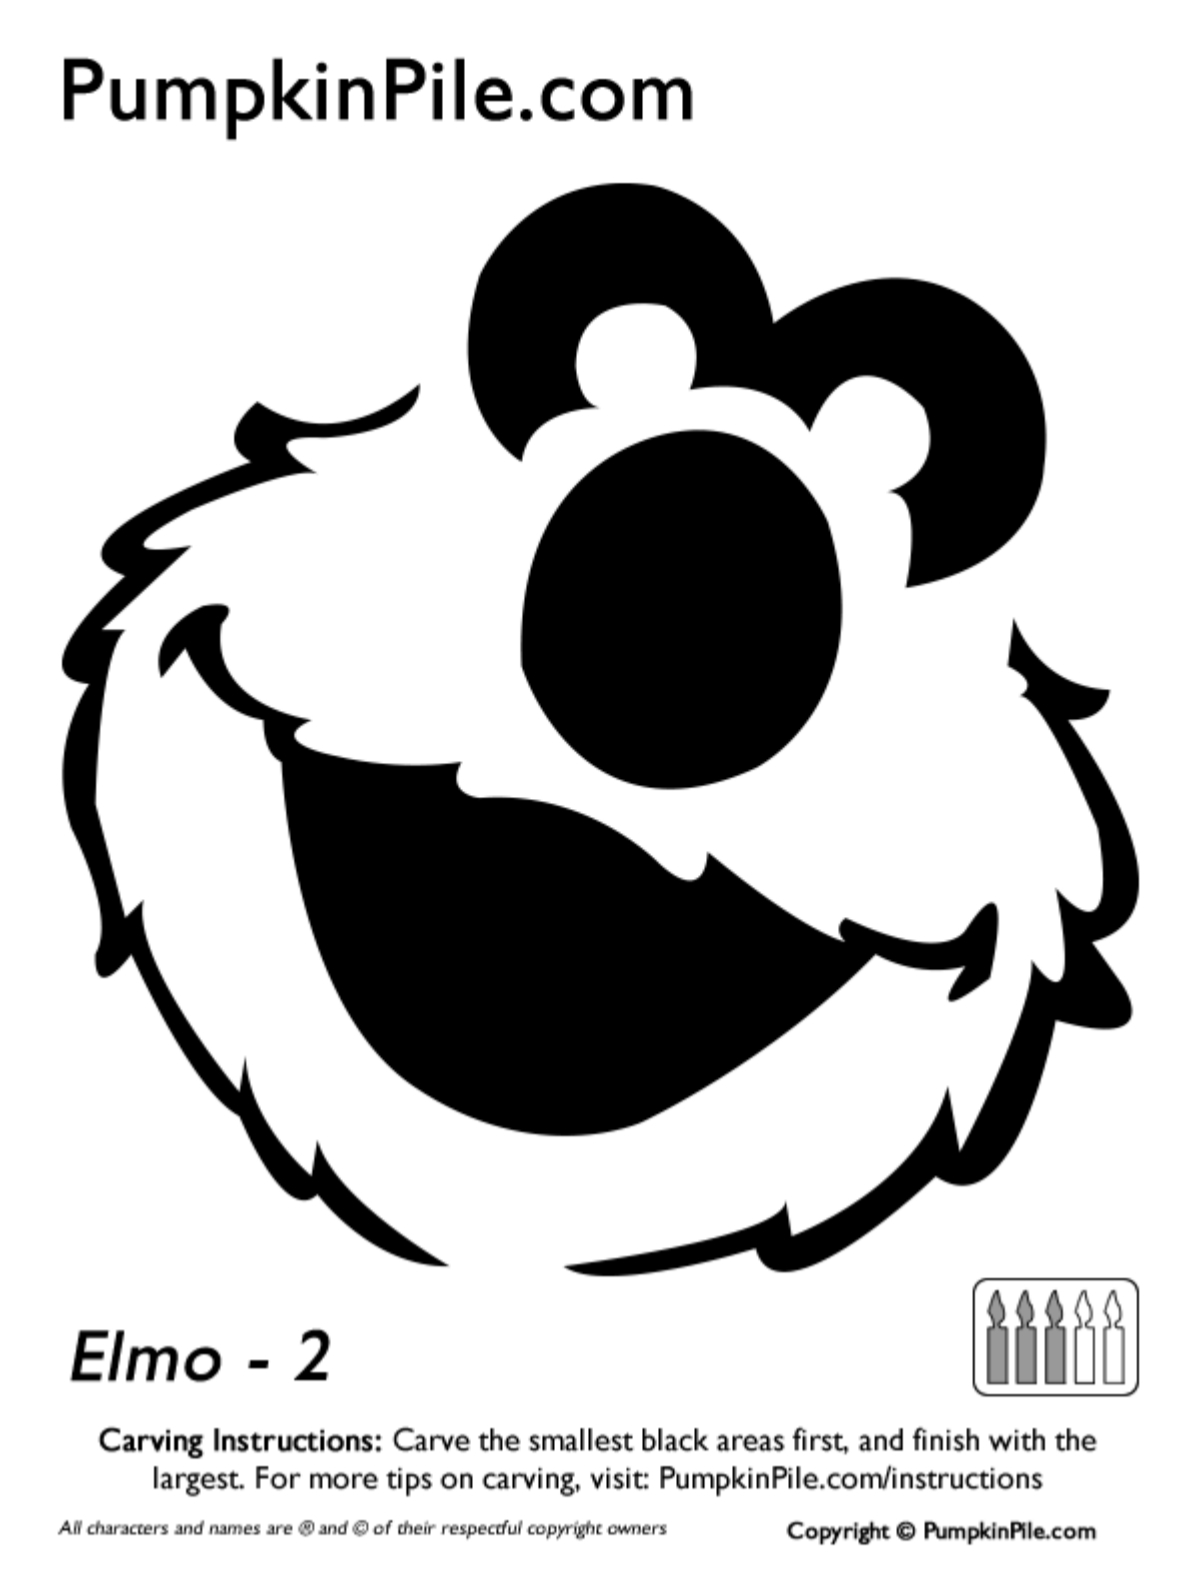 Easy Elmo Face Pumpkin Carving Stencil Template Free Printable - Free Elmo Pumpkin Pattern Printable